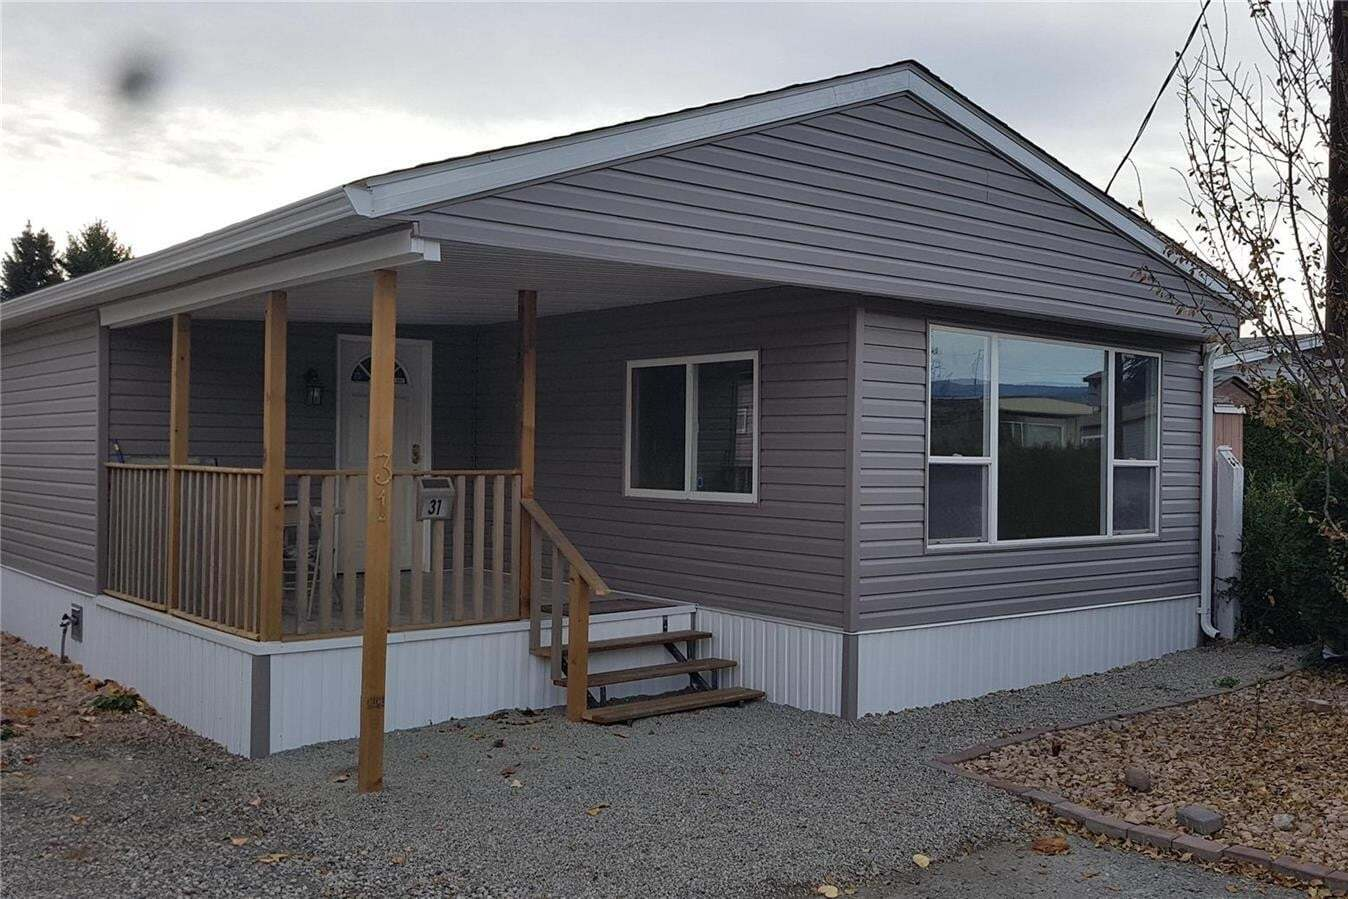 Home for sale at 1880 Old Boucherie Rd Unit 31 Westbank British Columbia - MLS: 10196262